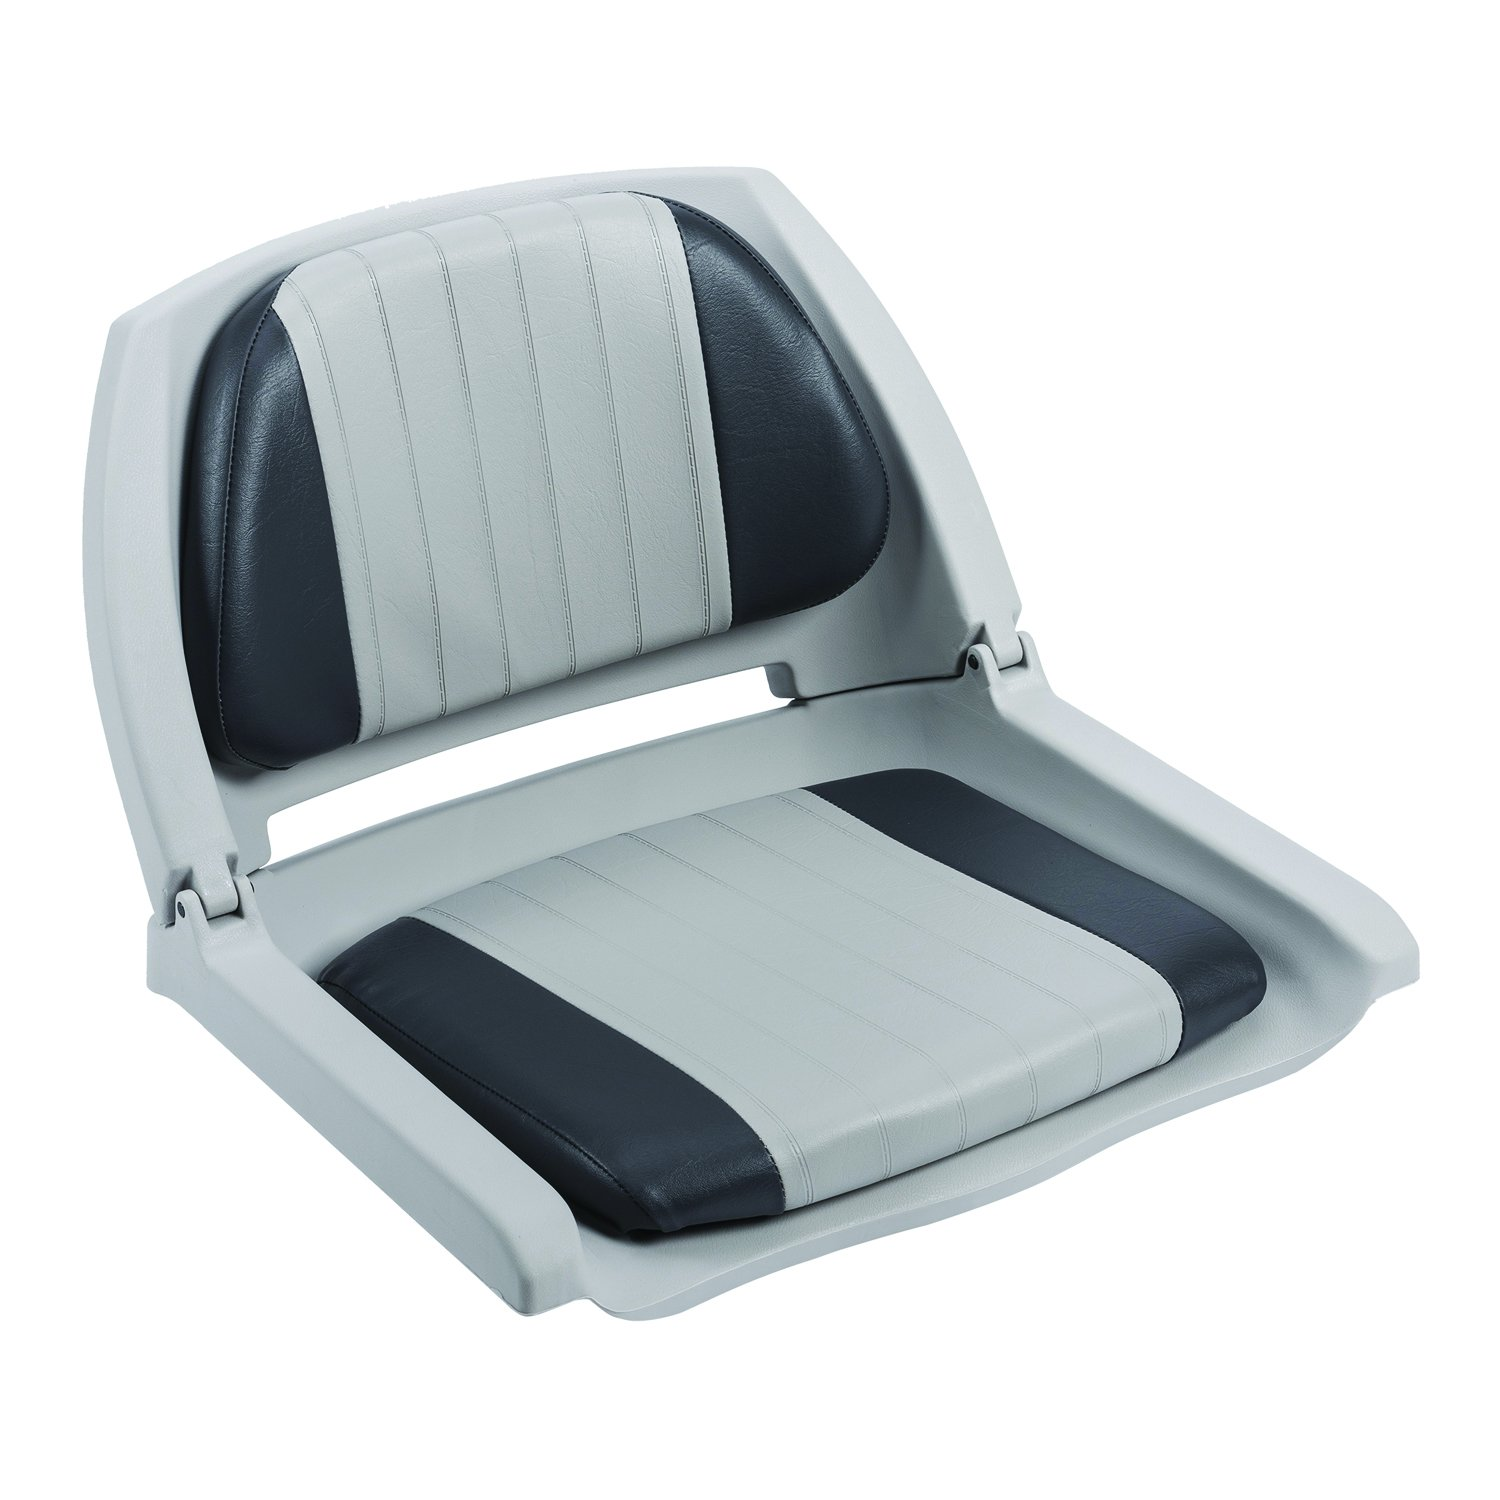 Plastic Folding Boat Seat, Gray, swatch